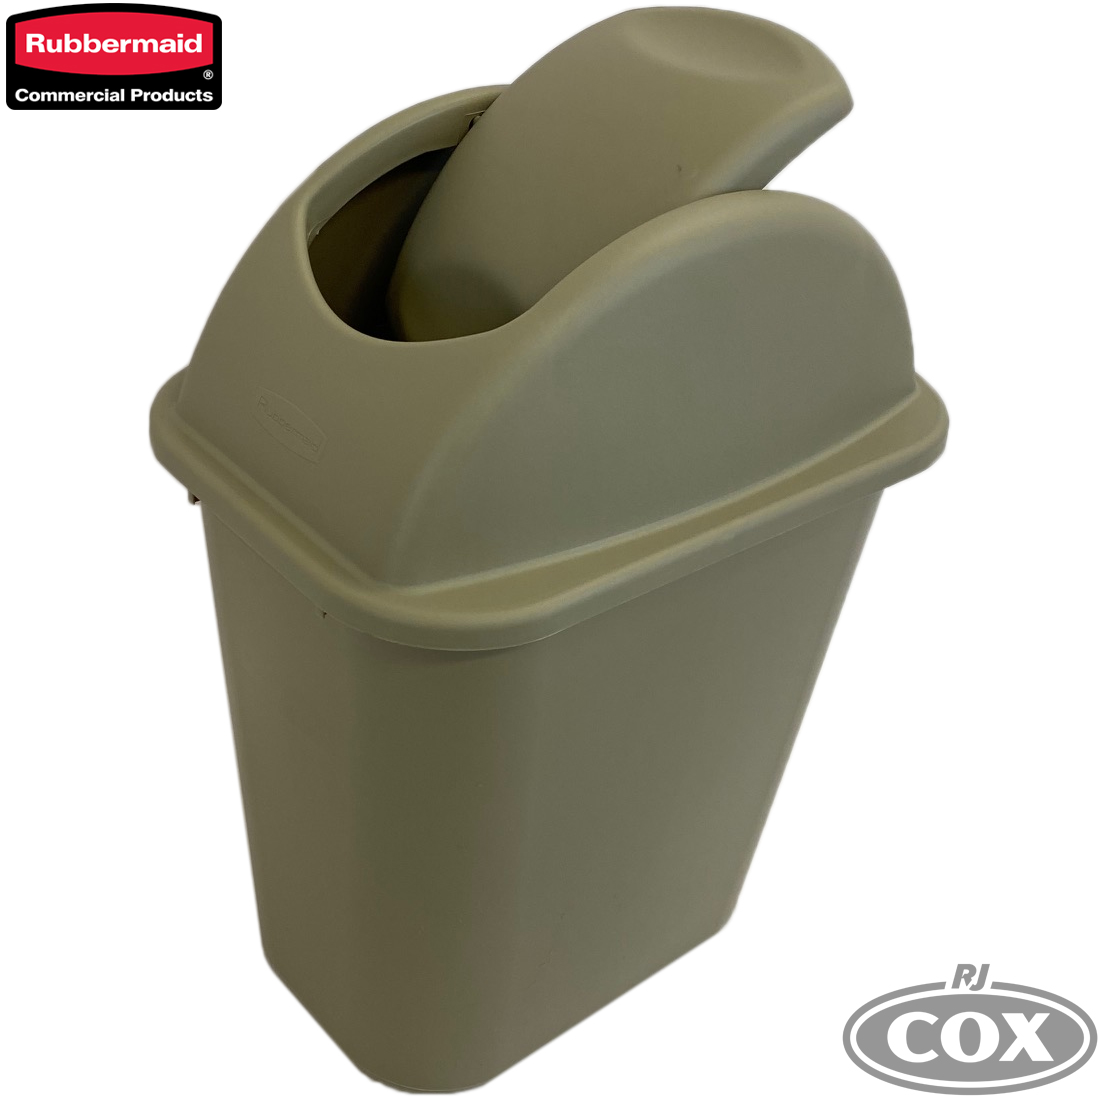 Rubbermaid Untouchable Swing Top Waste Bin 26.6L